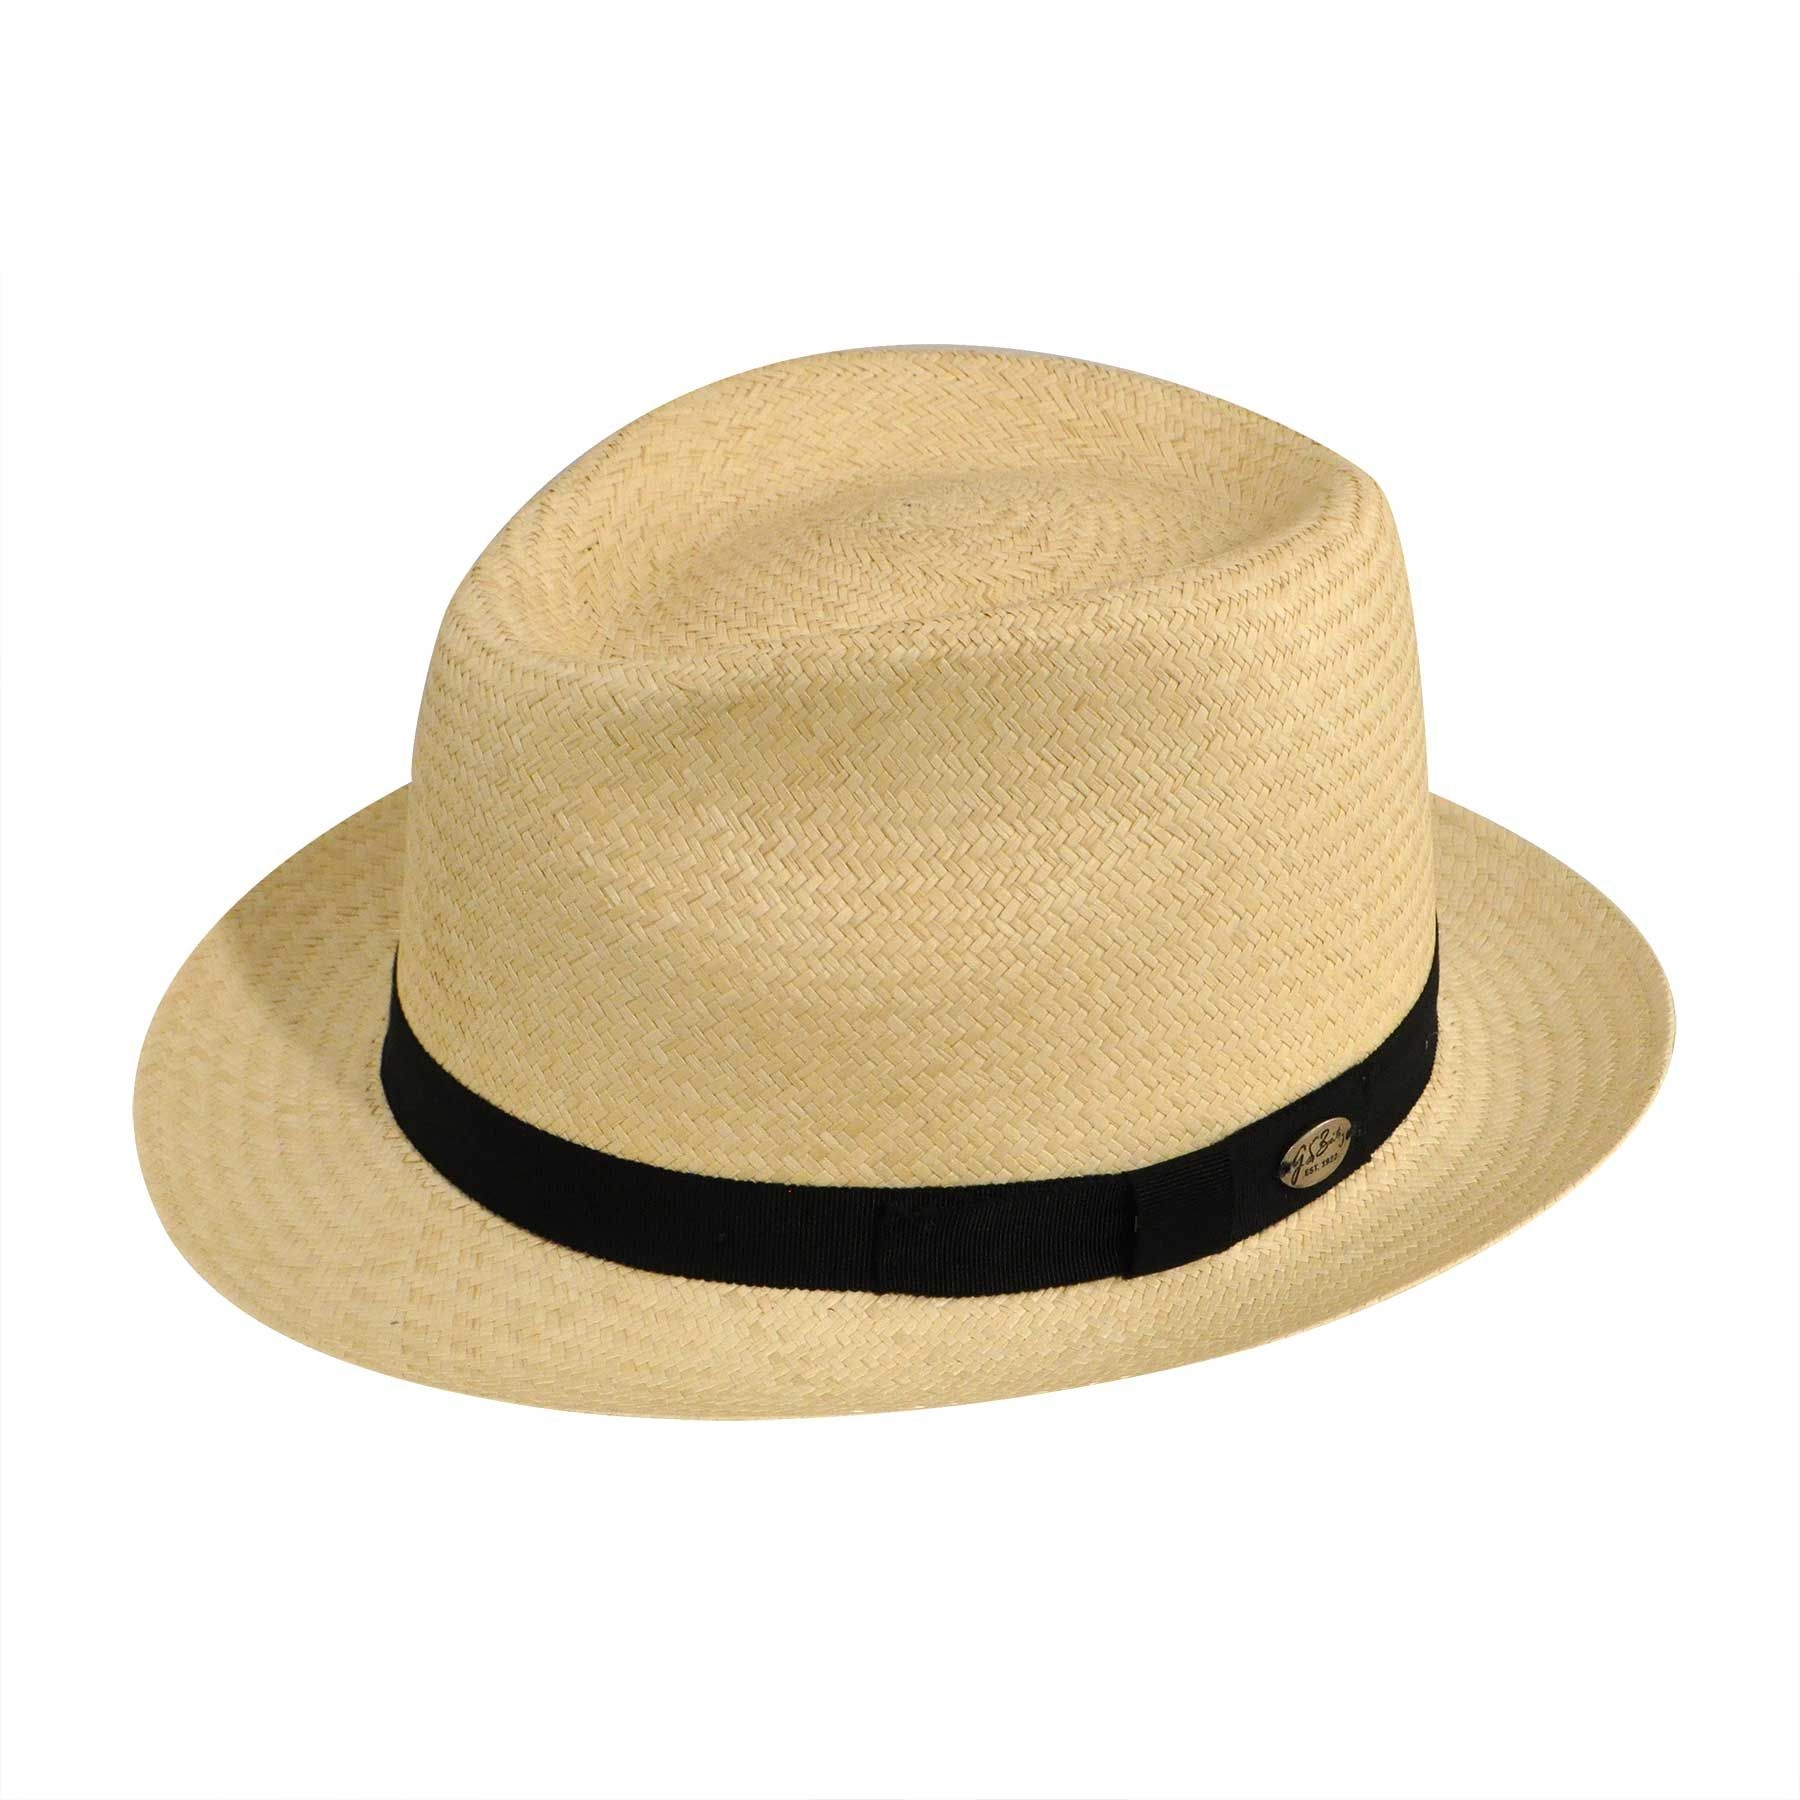 Bailey Porter - Straw Fedora Hat (Closeout)